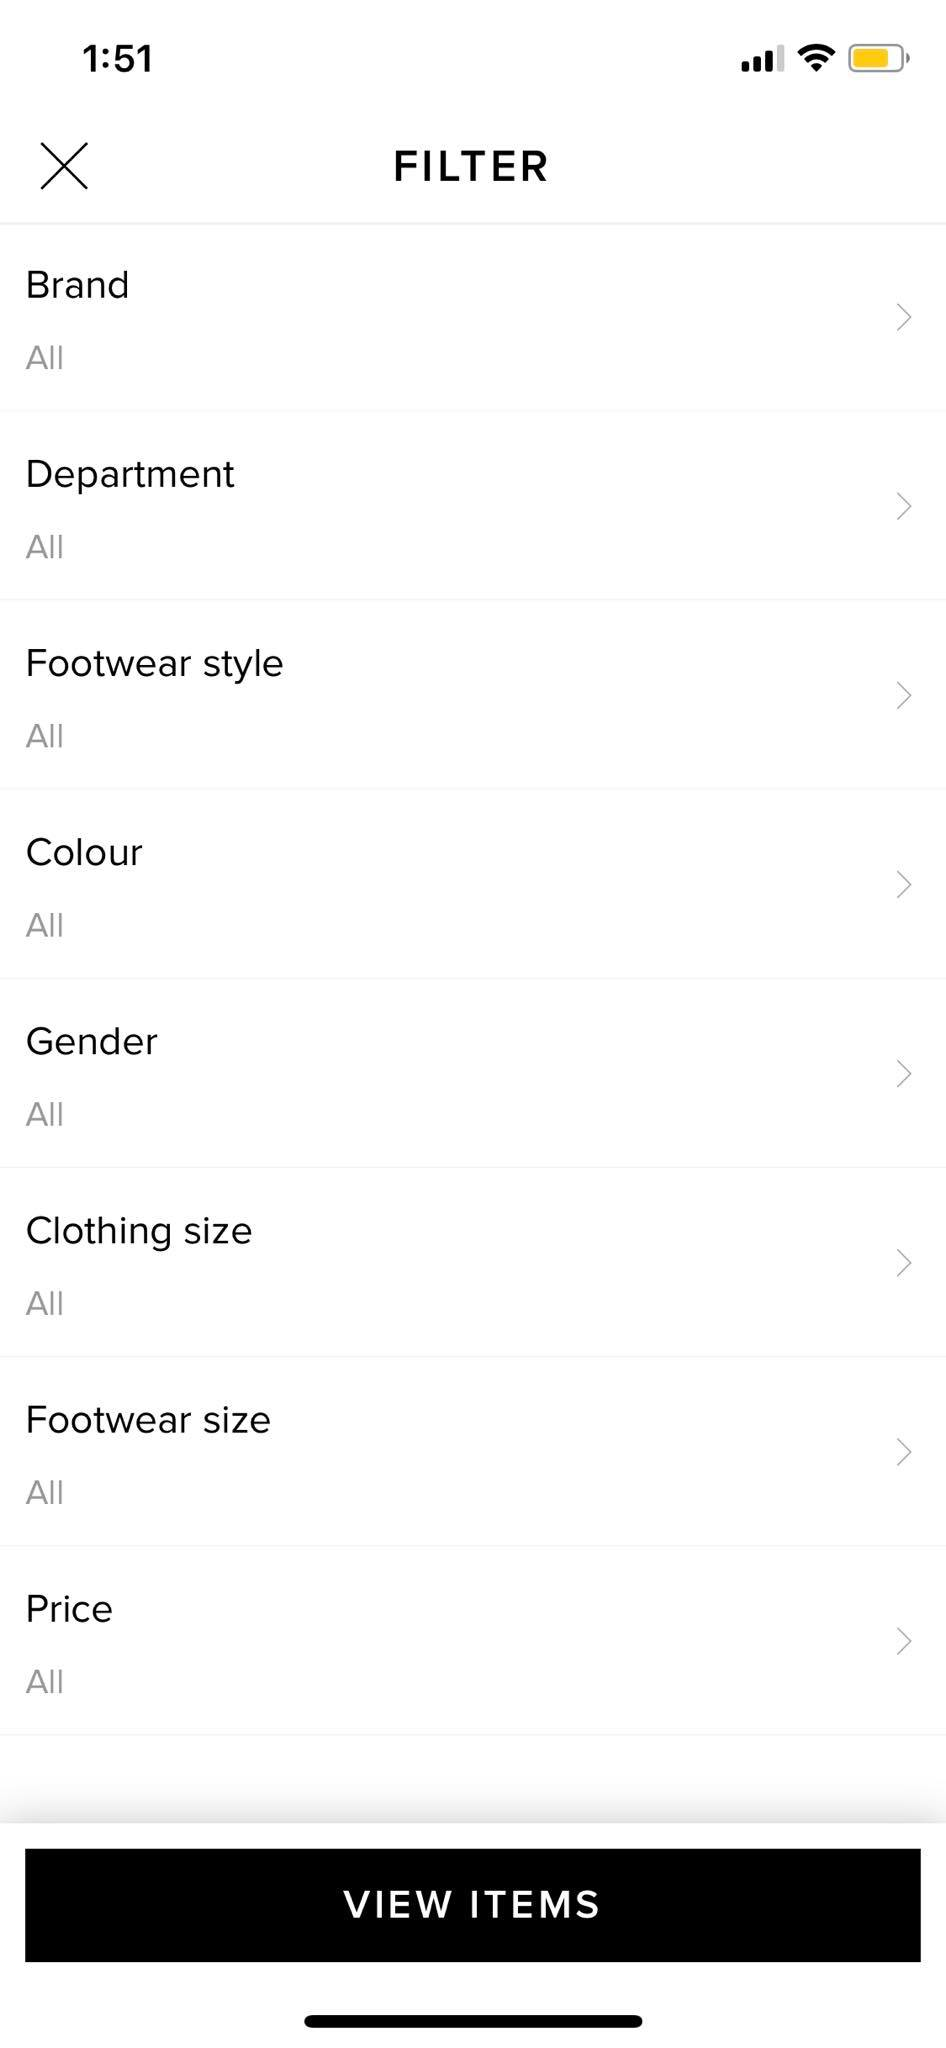 Filter on iOS by End from UIGarage